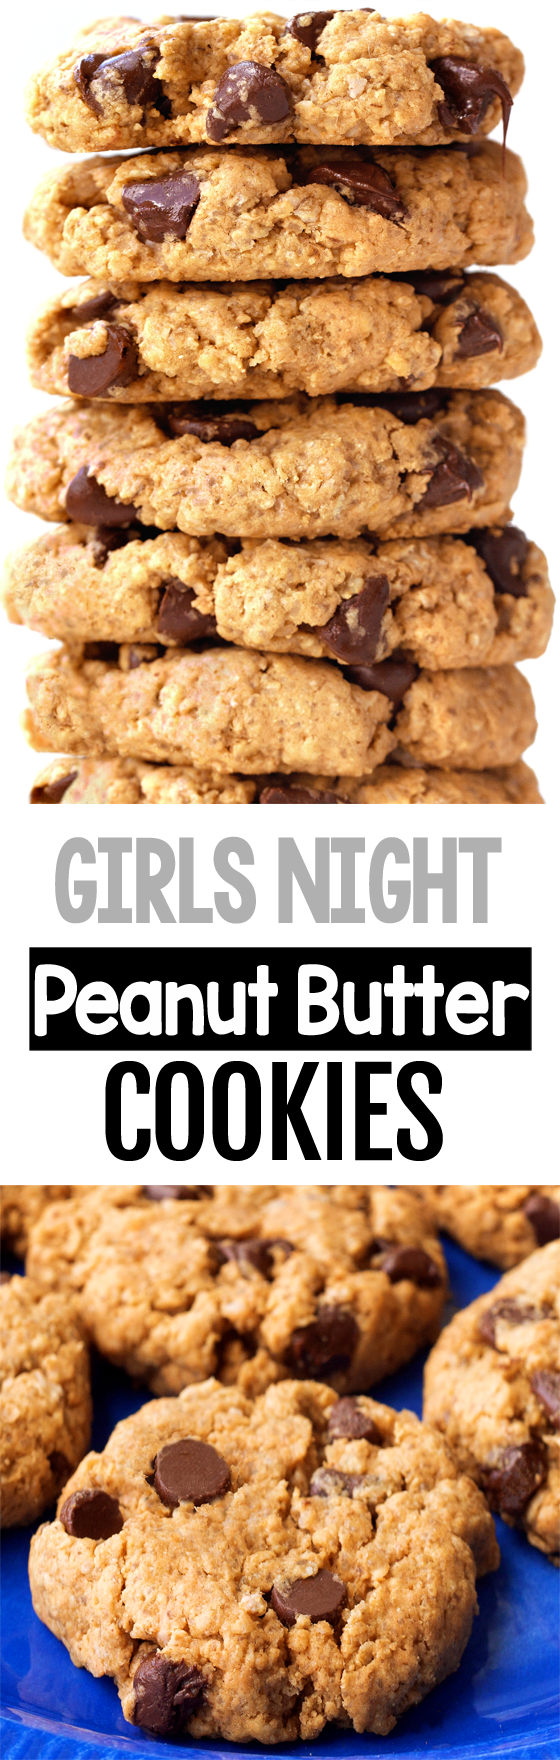 Girls Night Vegan Chocolate Chip Peanut Butter Cookies In 2020 Easy Baking Recipes Peanut Butter Chocolate Chip Cookies Vegan Cookies